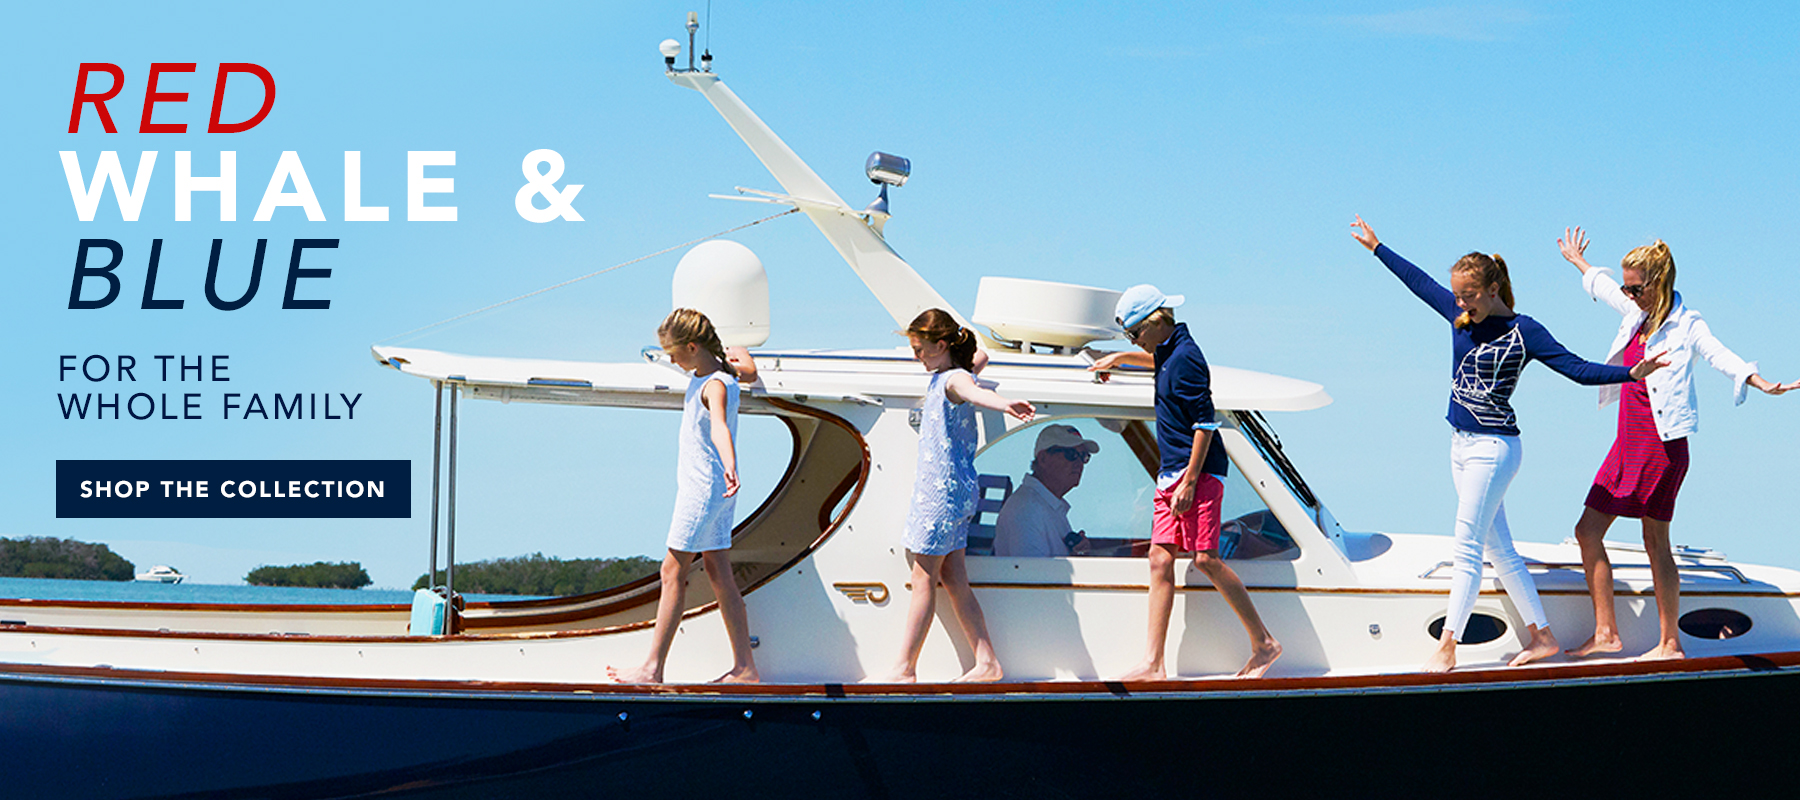 Red, Whale & Blue For the Whole Family. Shop the Collection